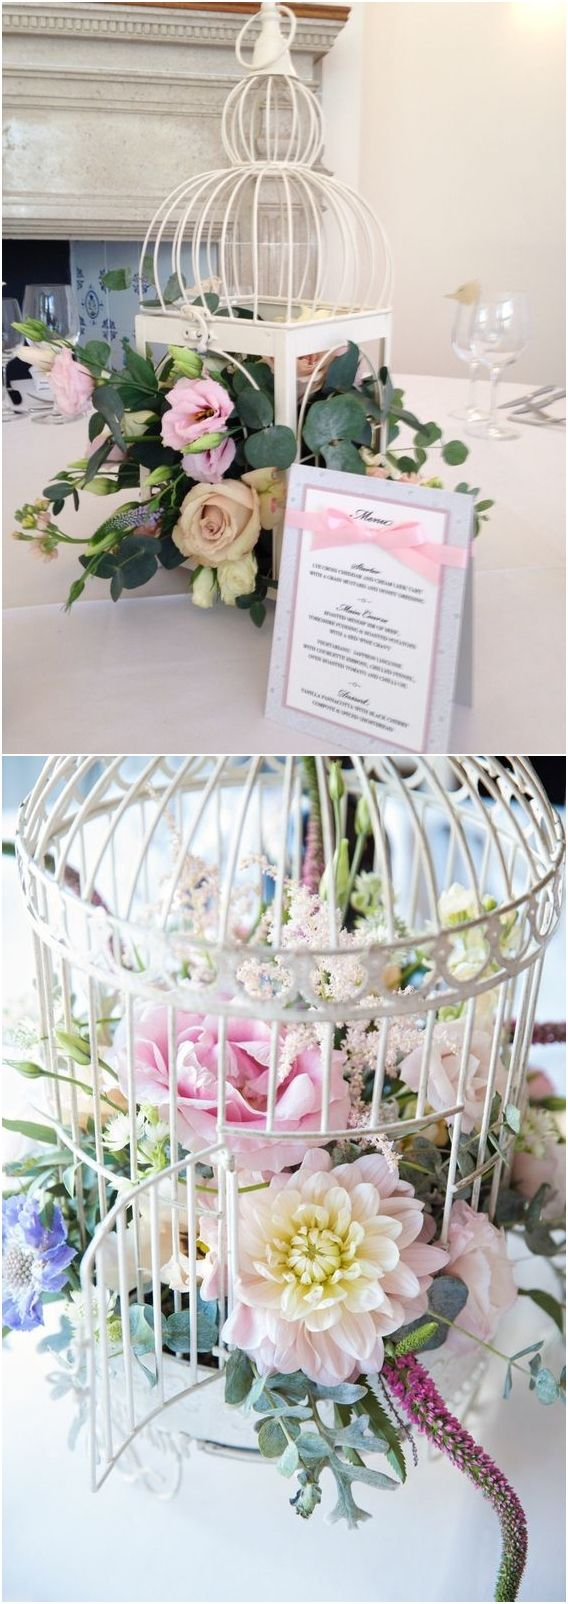 Top 20 Vintage Birdcage Wedding Centerpieces for 2018 | Vintage ...